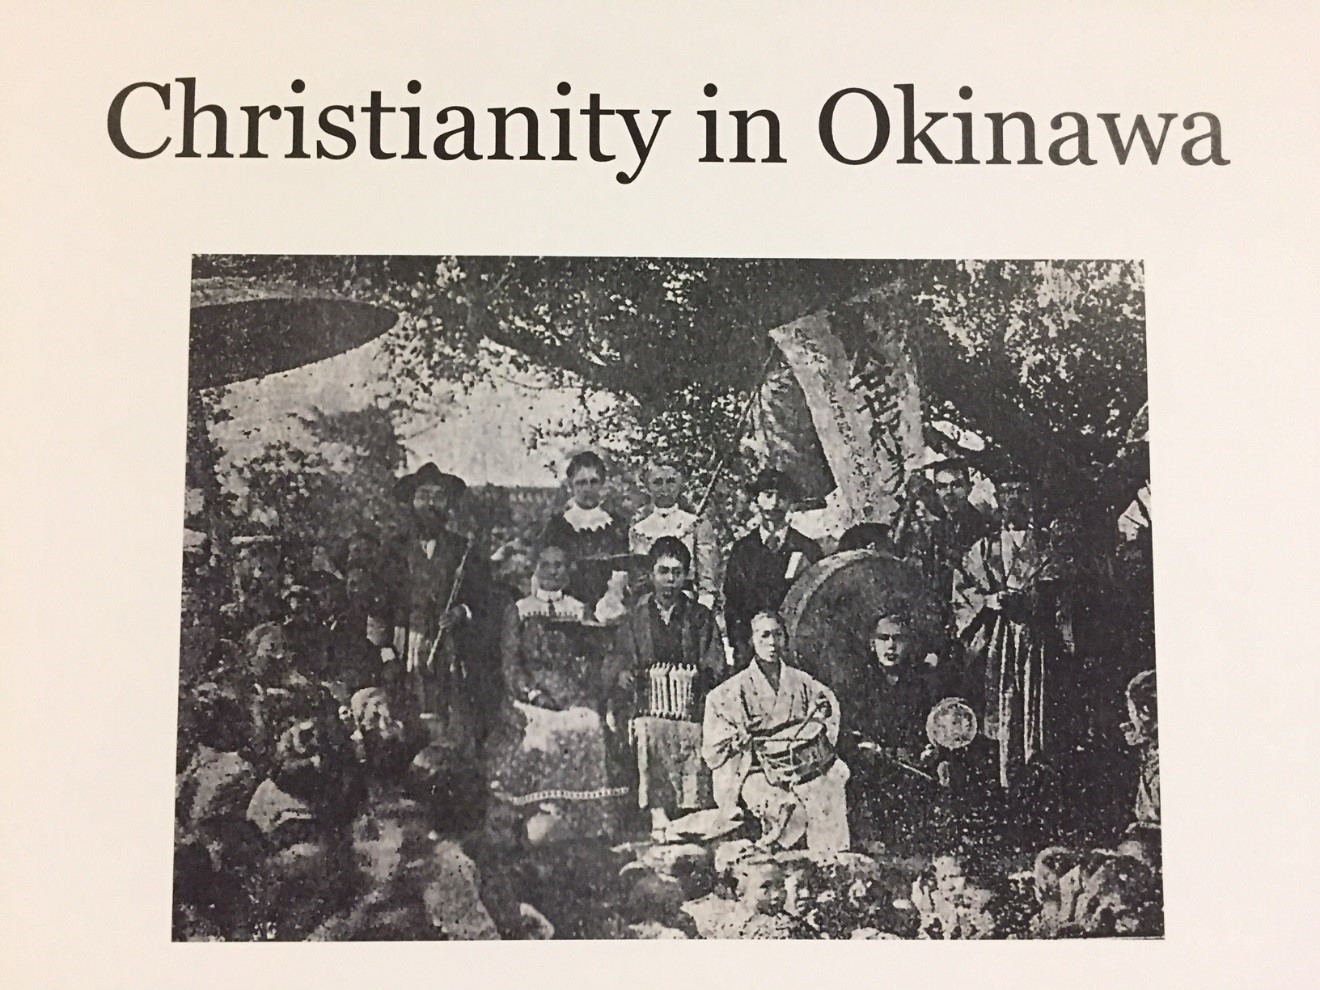 Christianity in Okinawa.